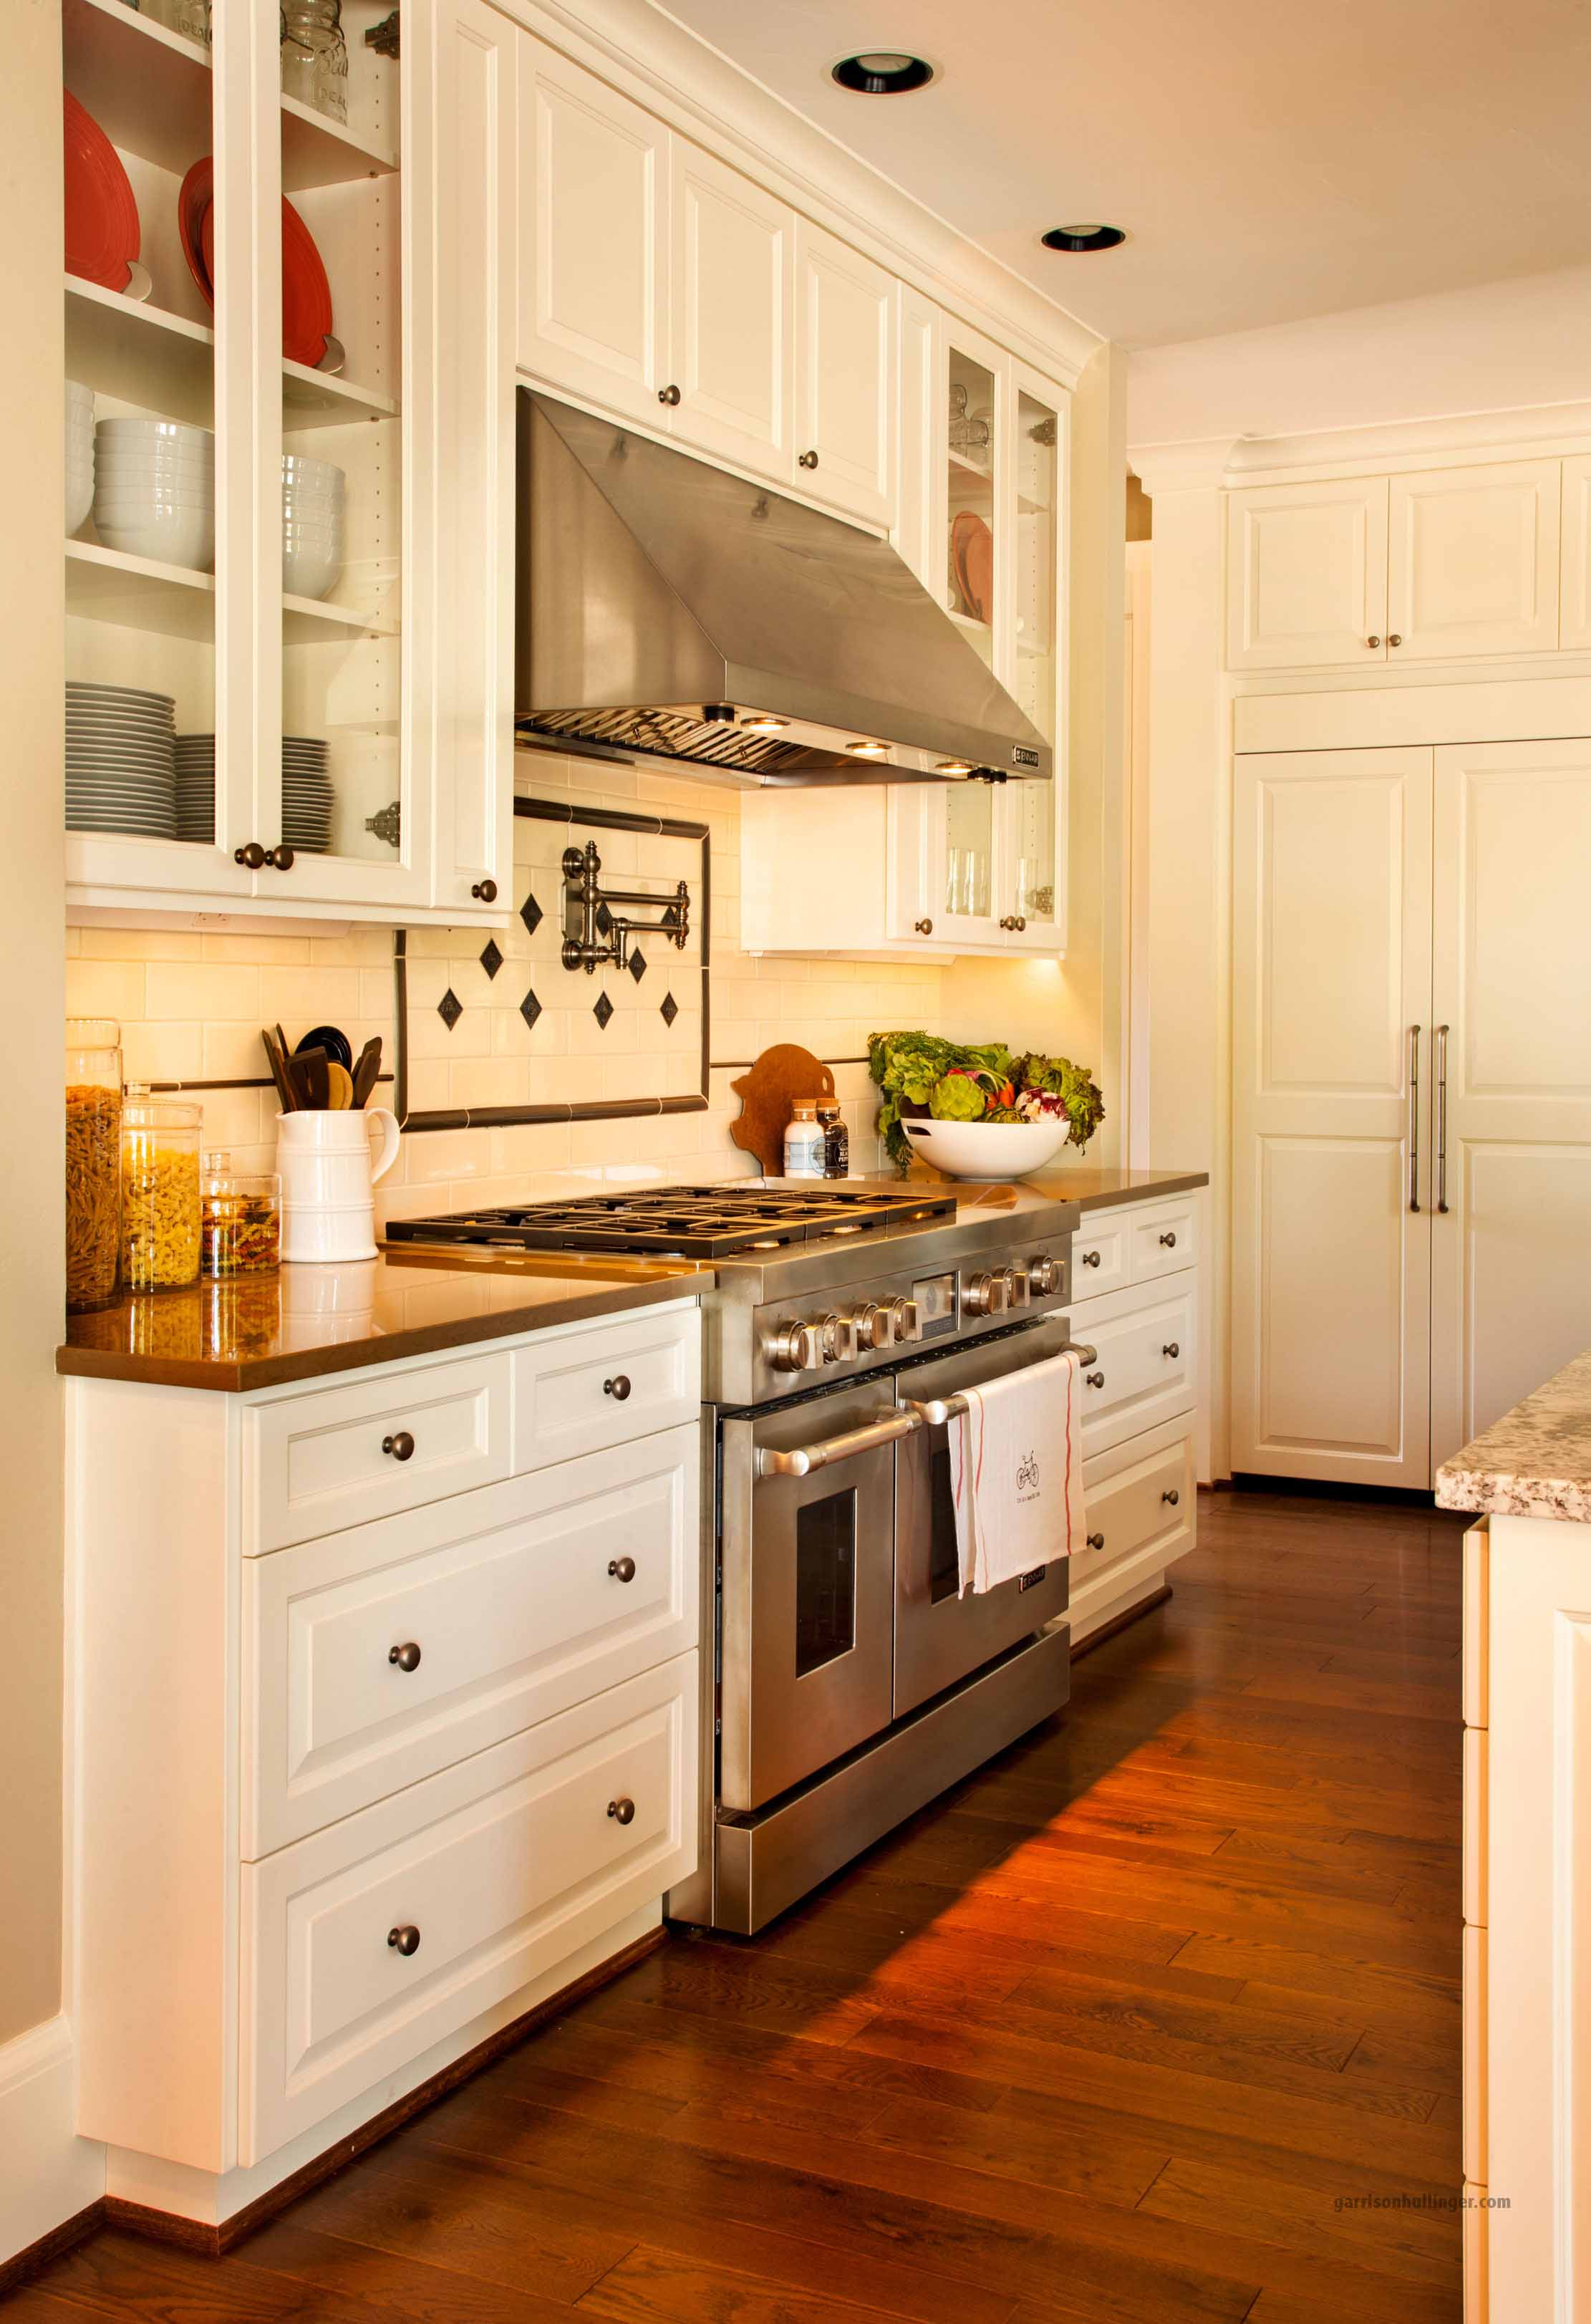 cool kitchen ideas, light and bright kitchens, made in america kitchens